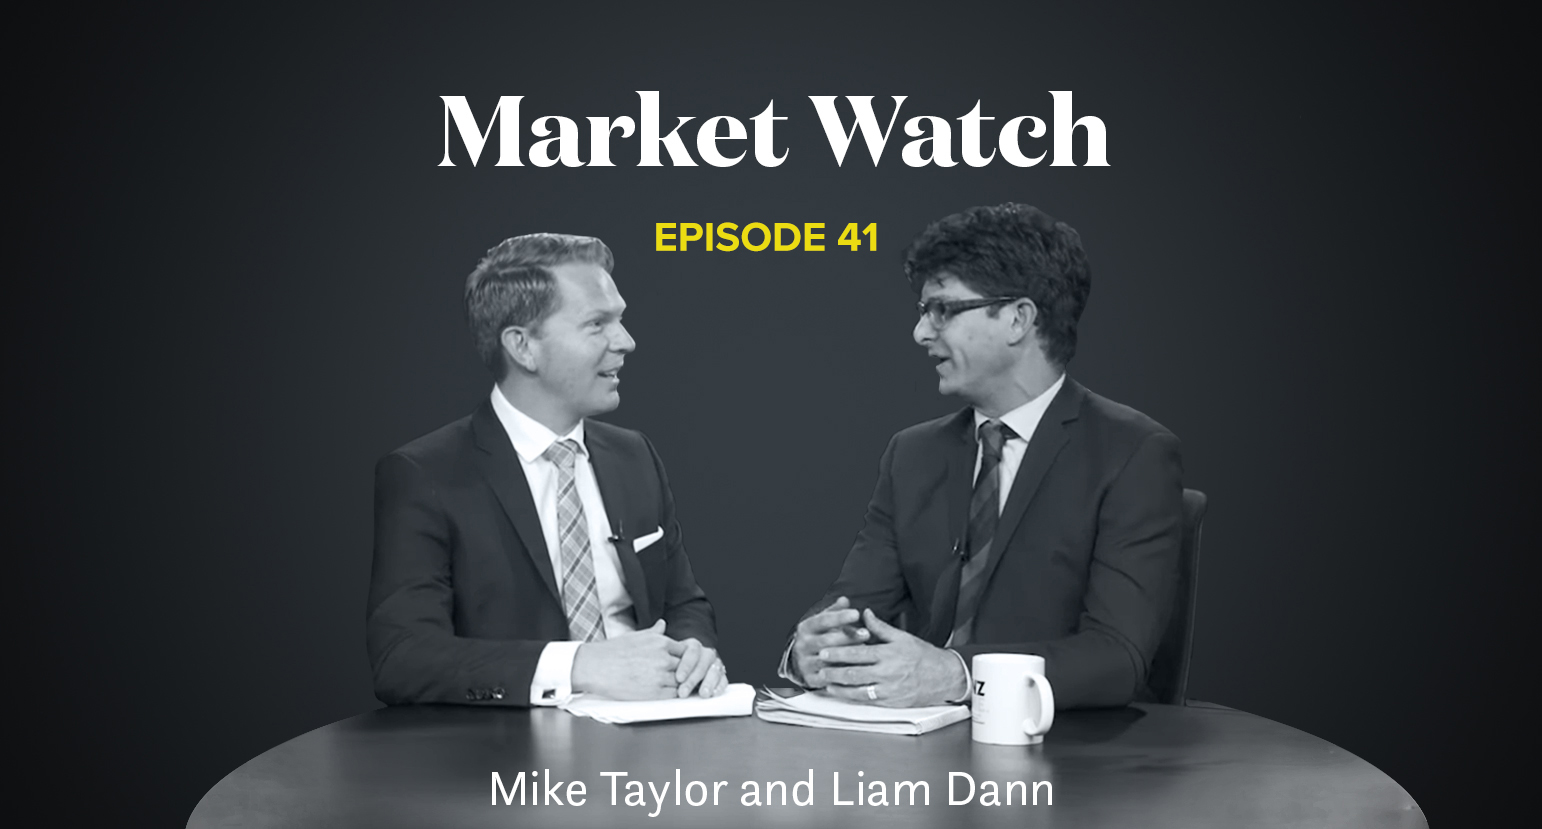 Market-Watch-Video-and-EP41_Digital.jpg